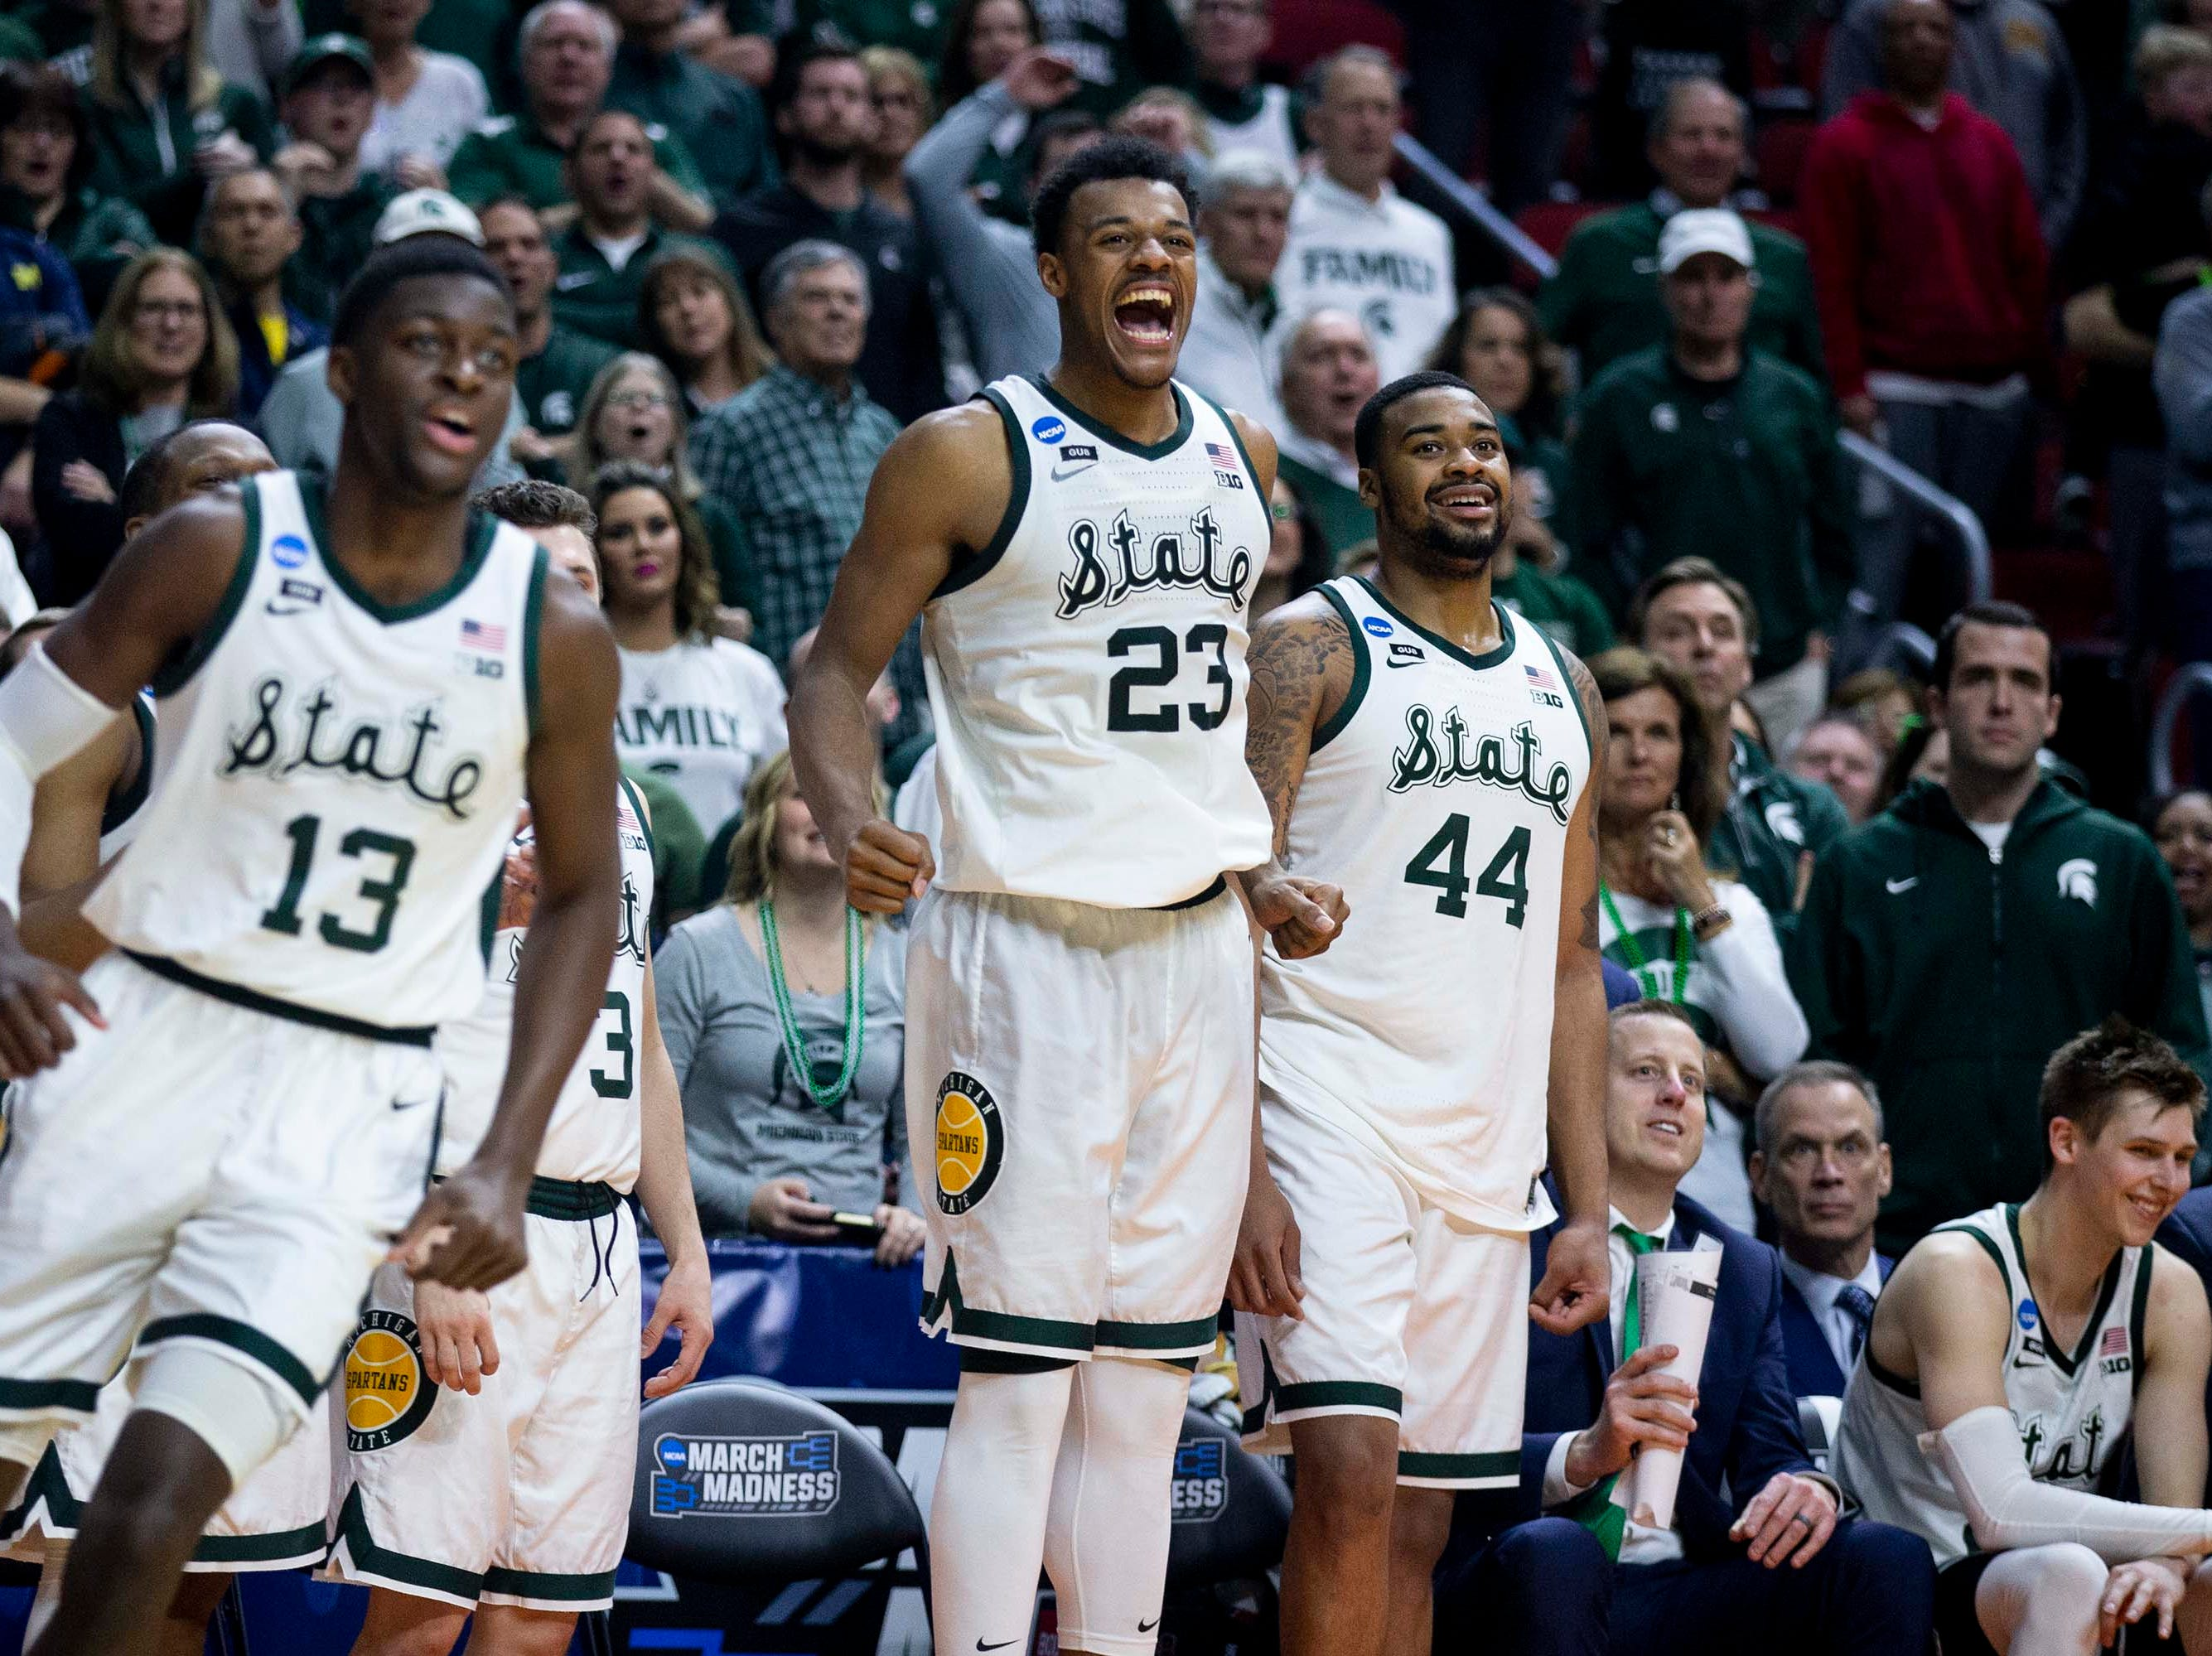 Michigan State's Xavier Tillman celebrates from the bench during the NCAA Tournament second-round match-up between Minnesota and Michigan State on Saturday, March 23, 2019, in Wells Fargo Arena in Des Moines, Iowa.